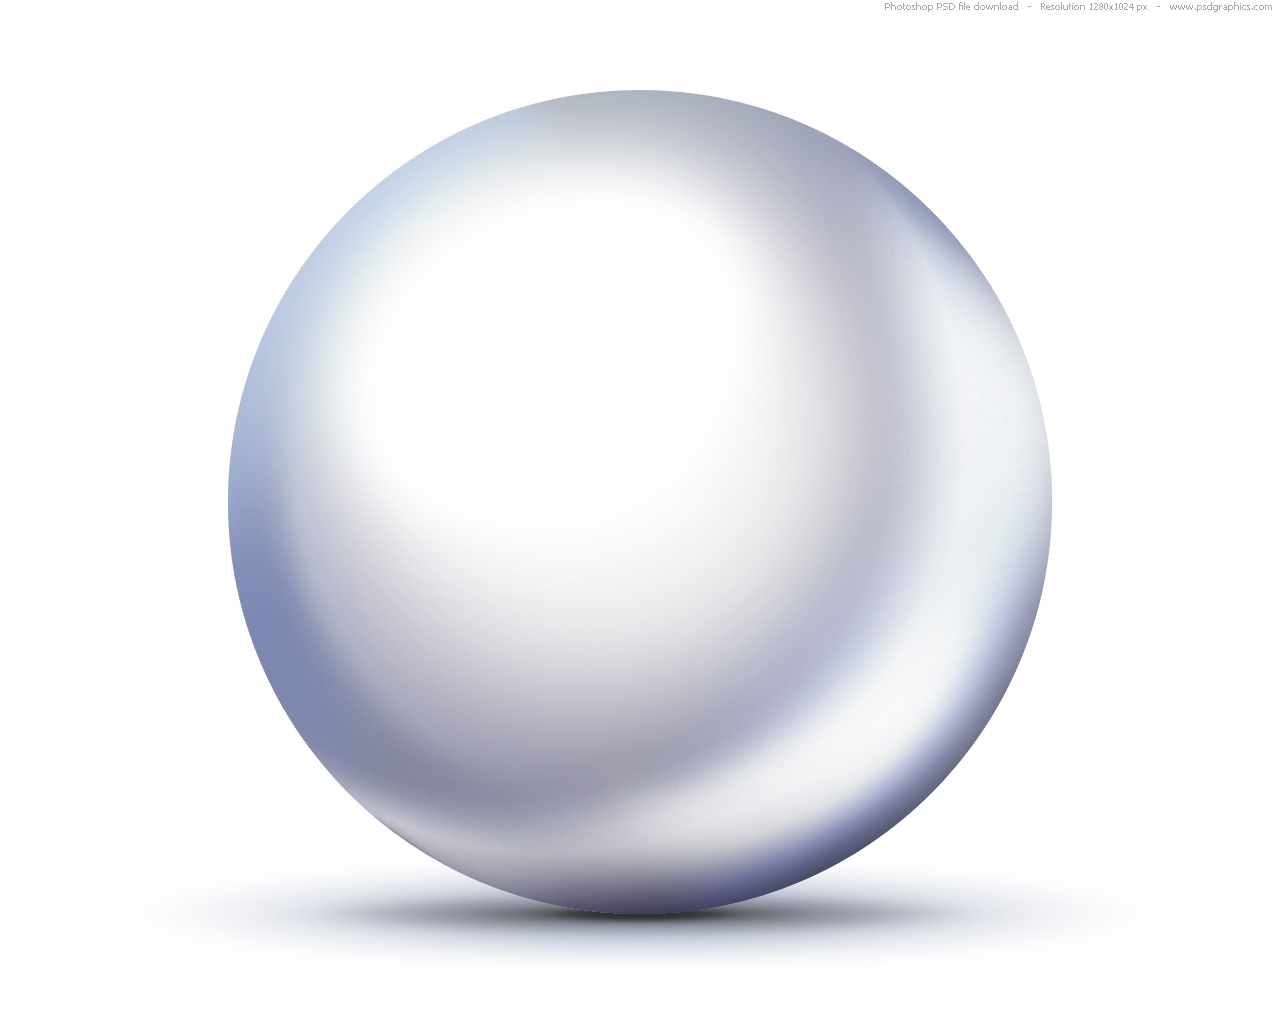 Shiny White Pearls Transparent PNG